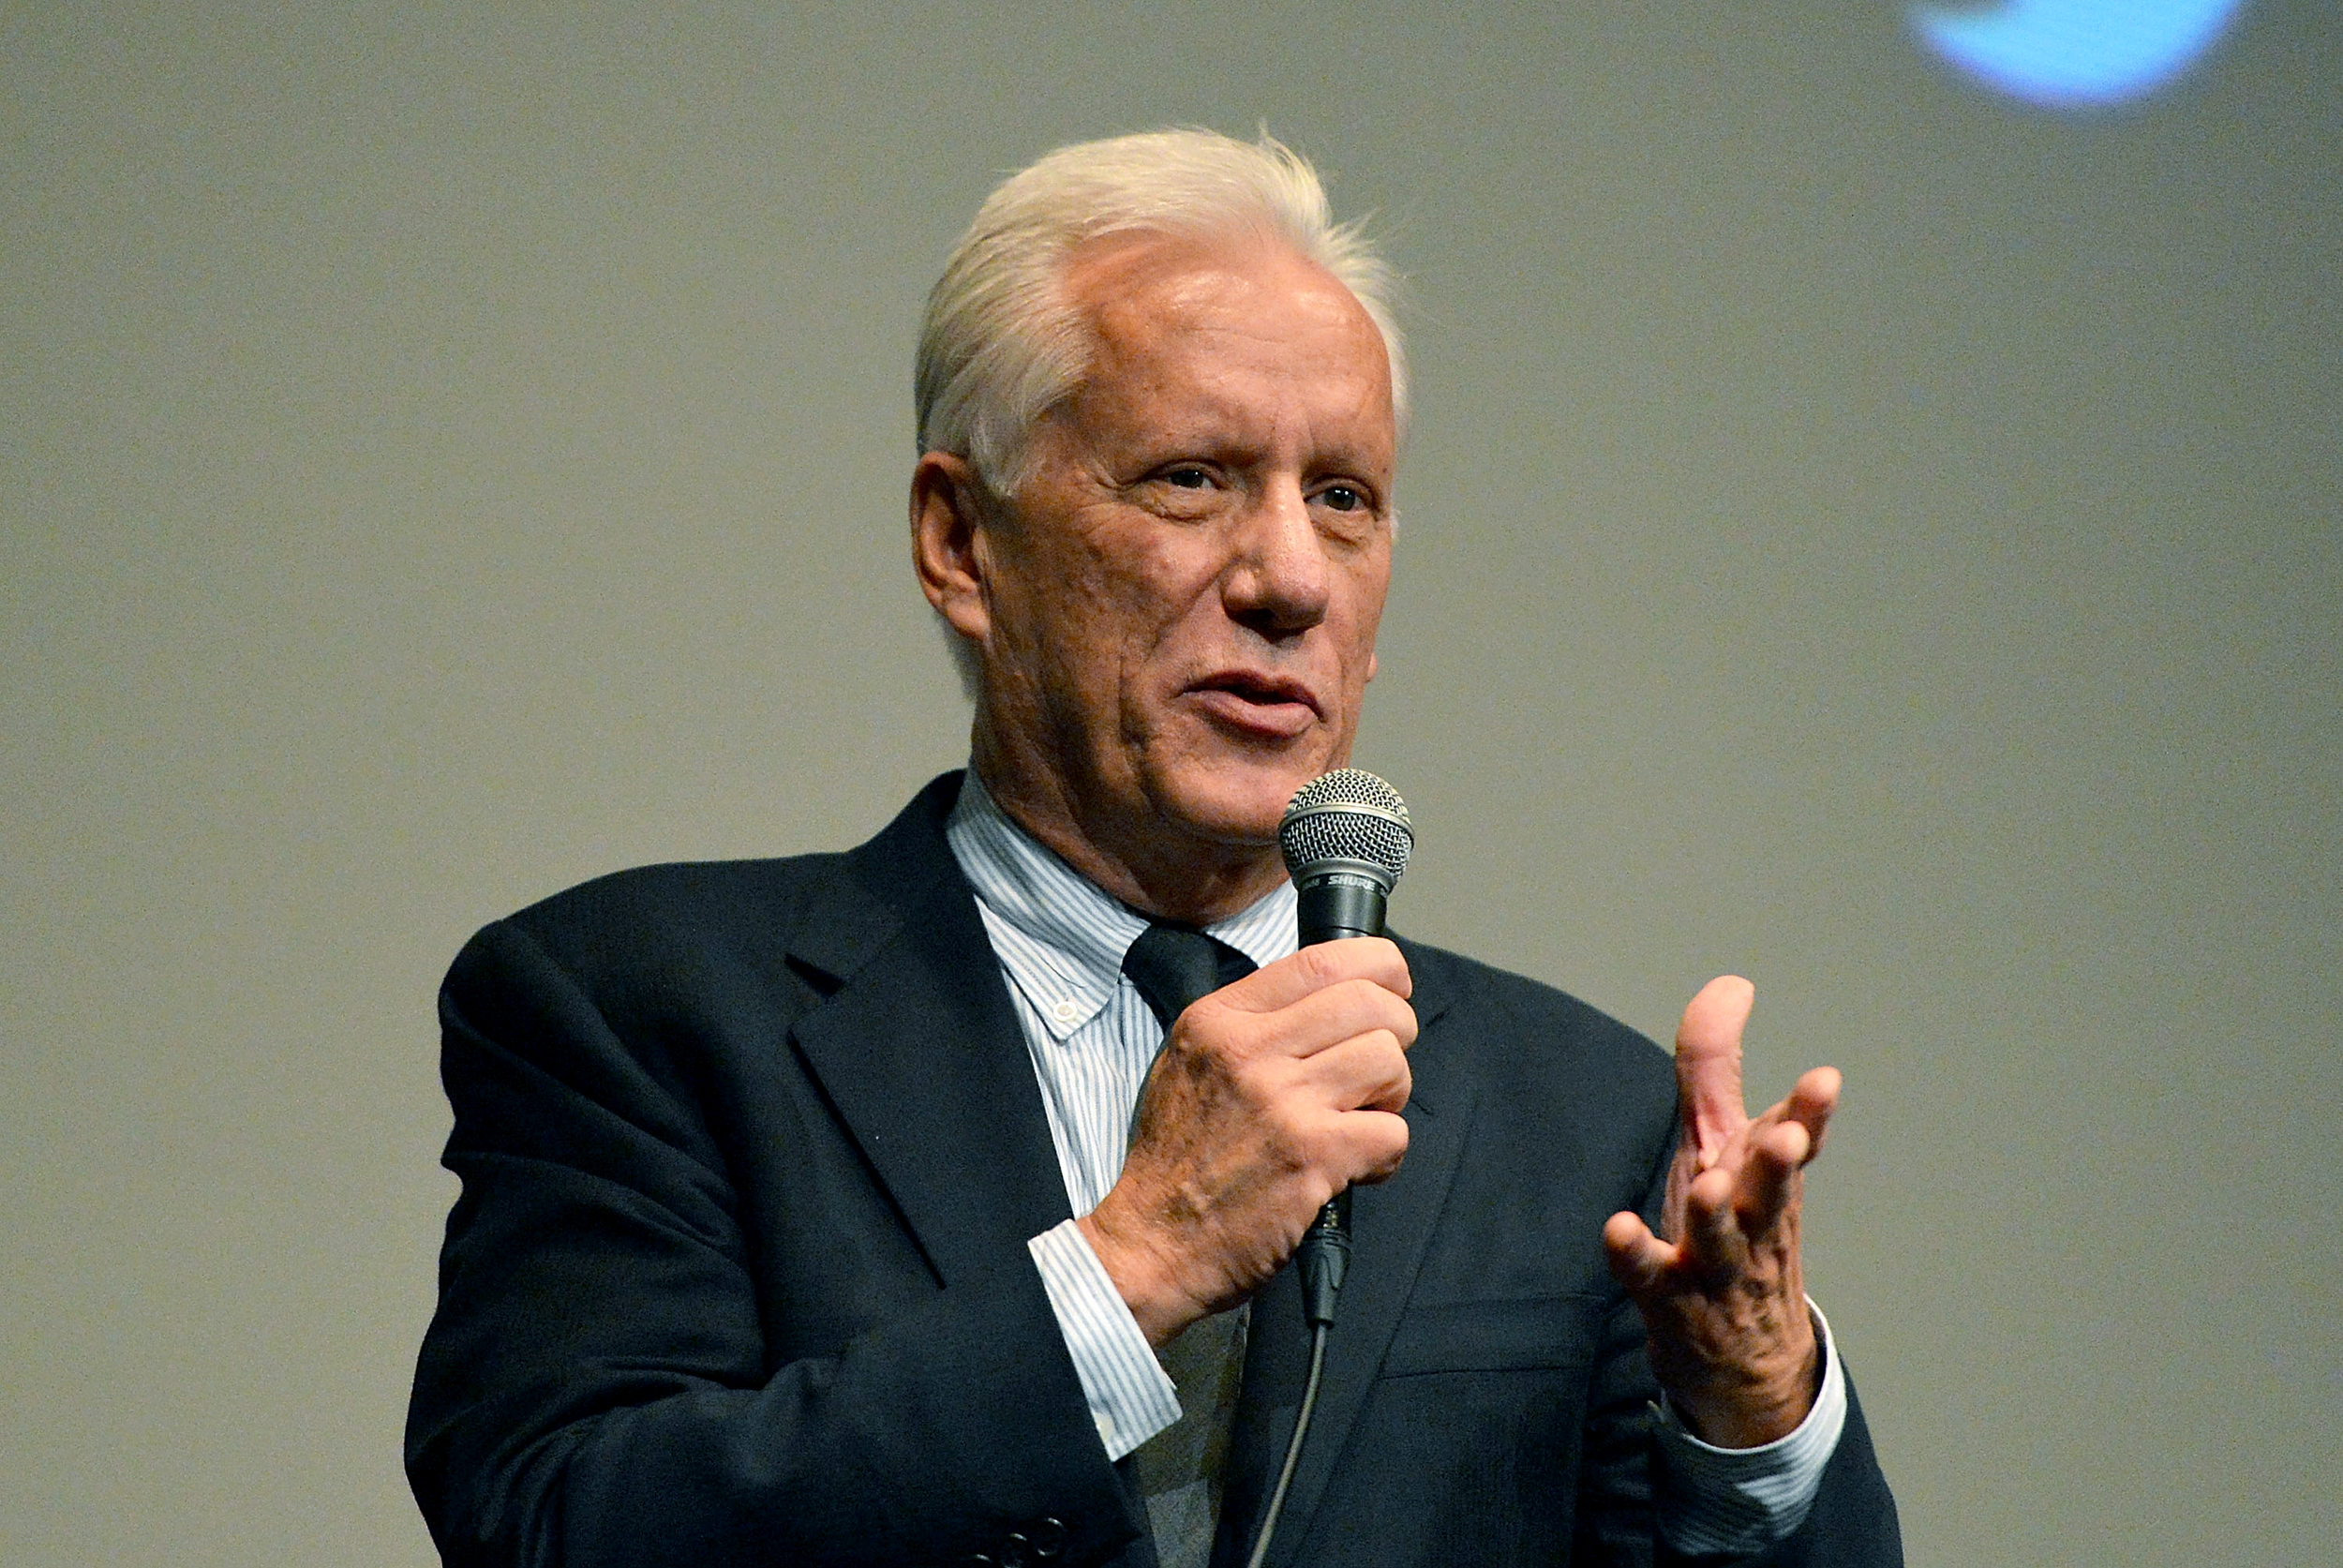 James Woods Sues Anonymous Twitter User for $10M, Alleging ...